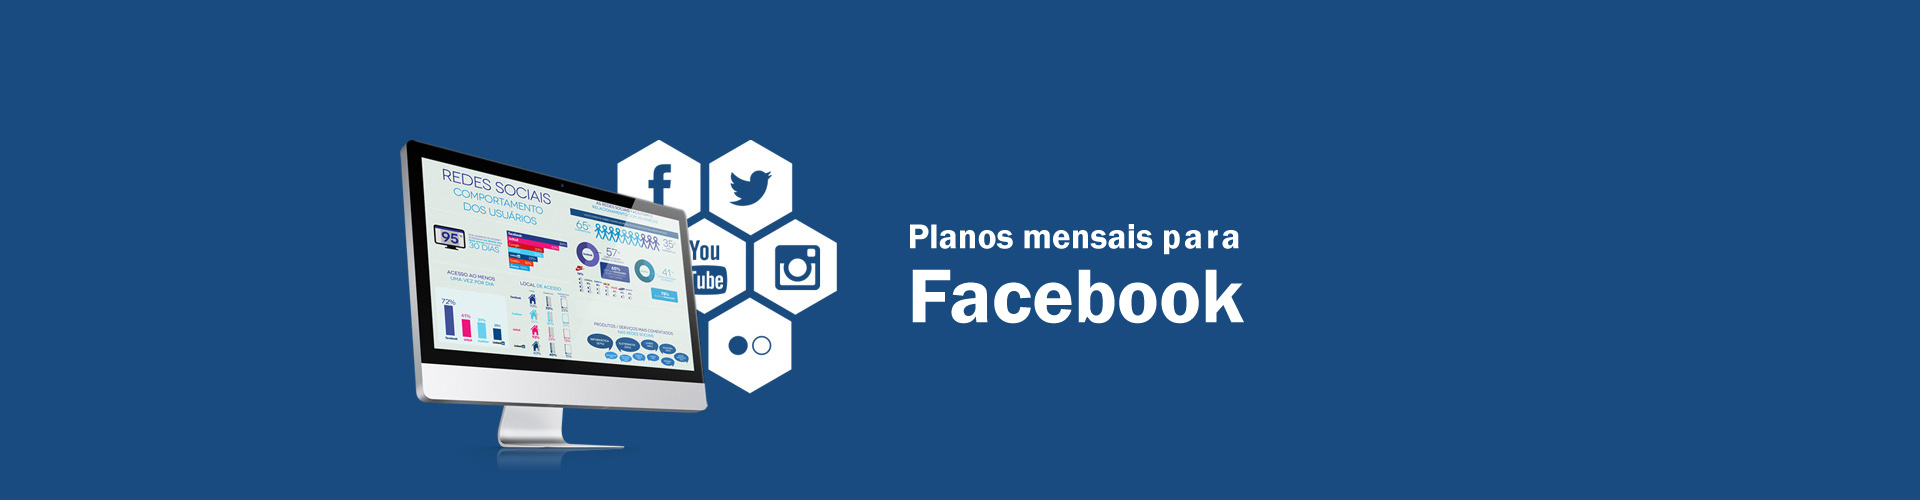 slider-facebook-azempresas